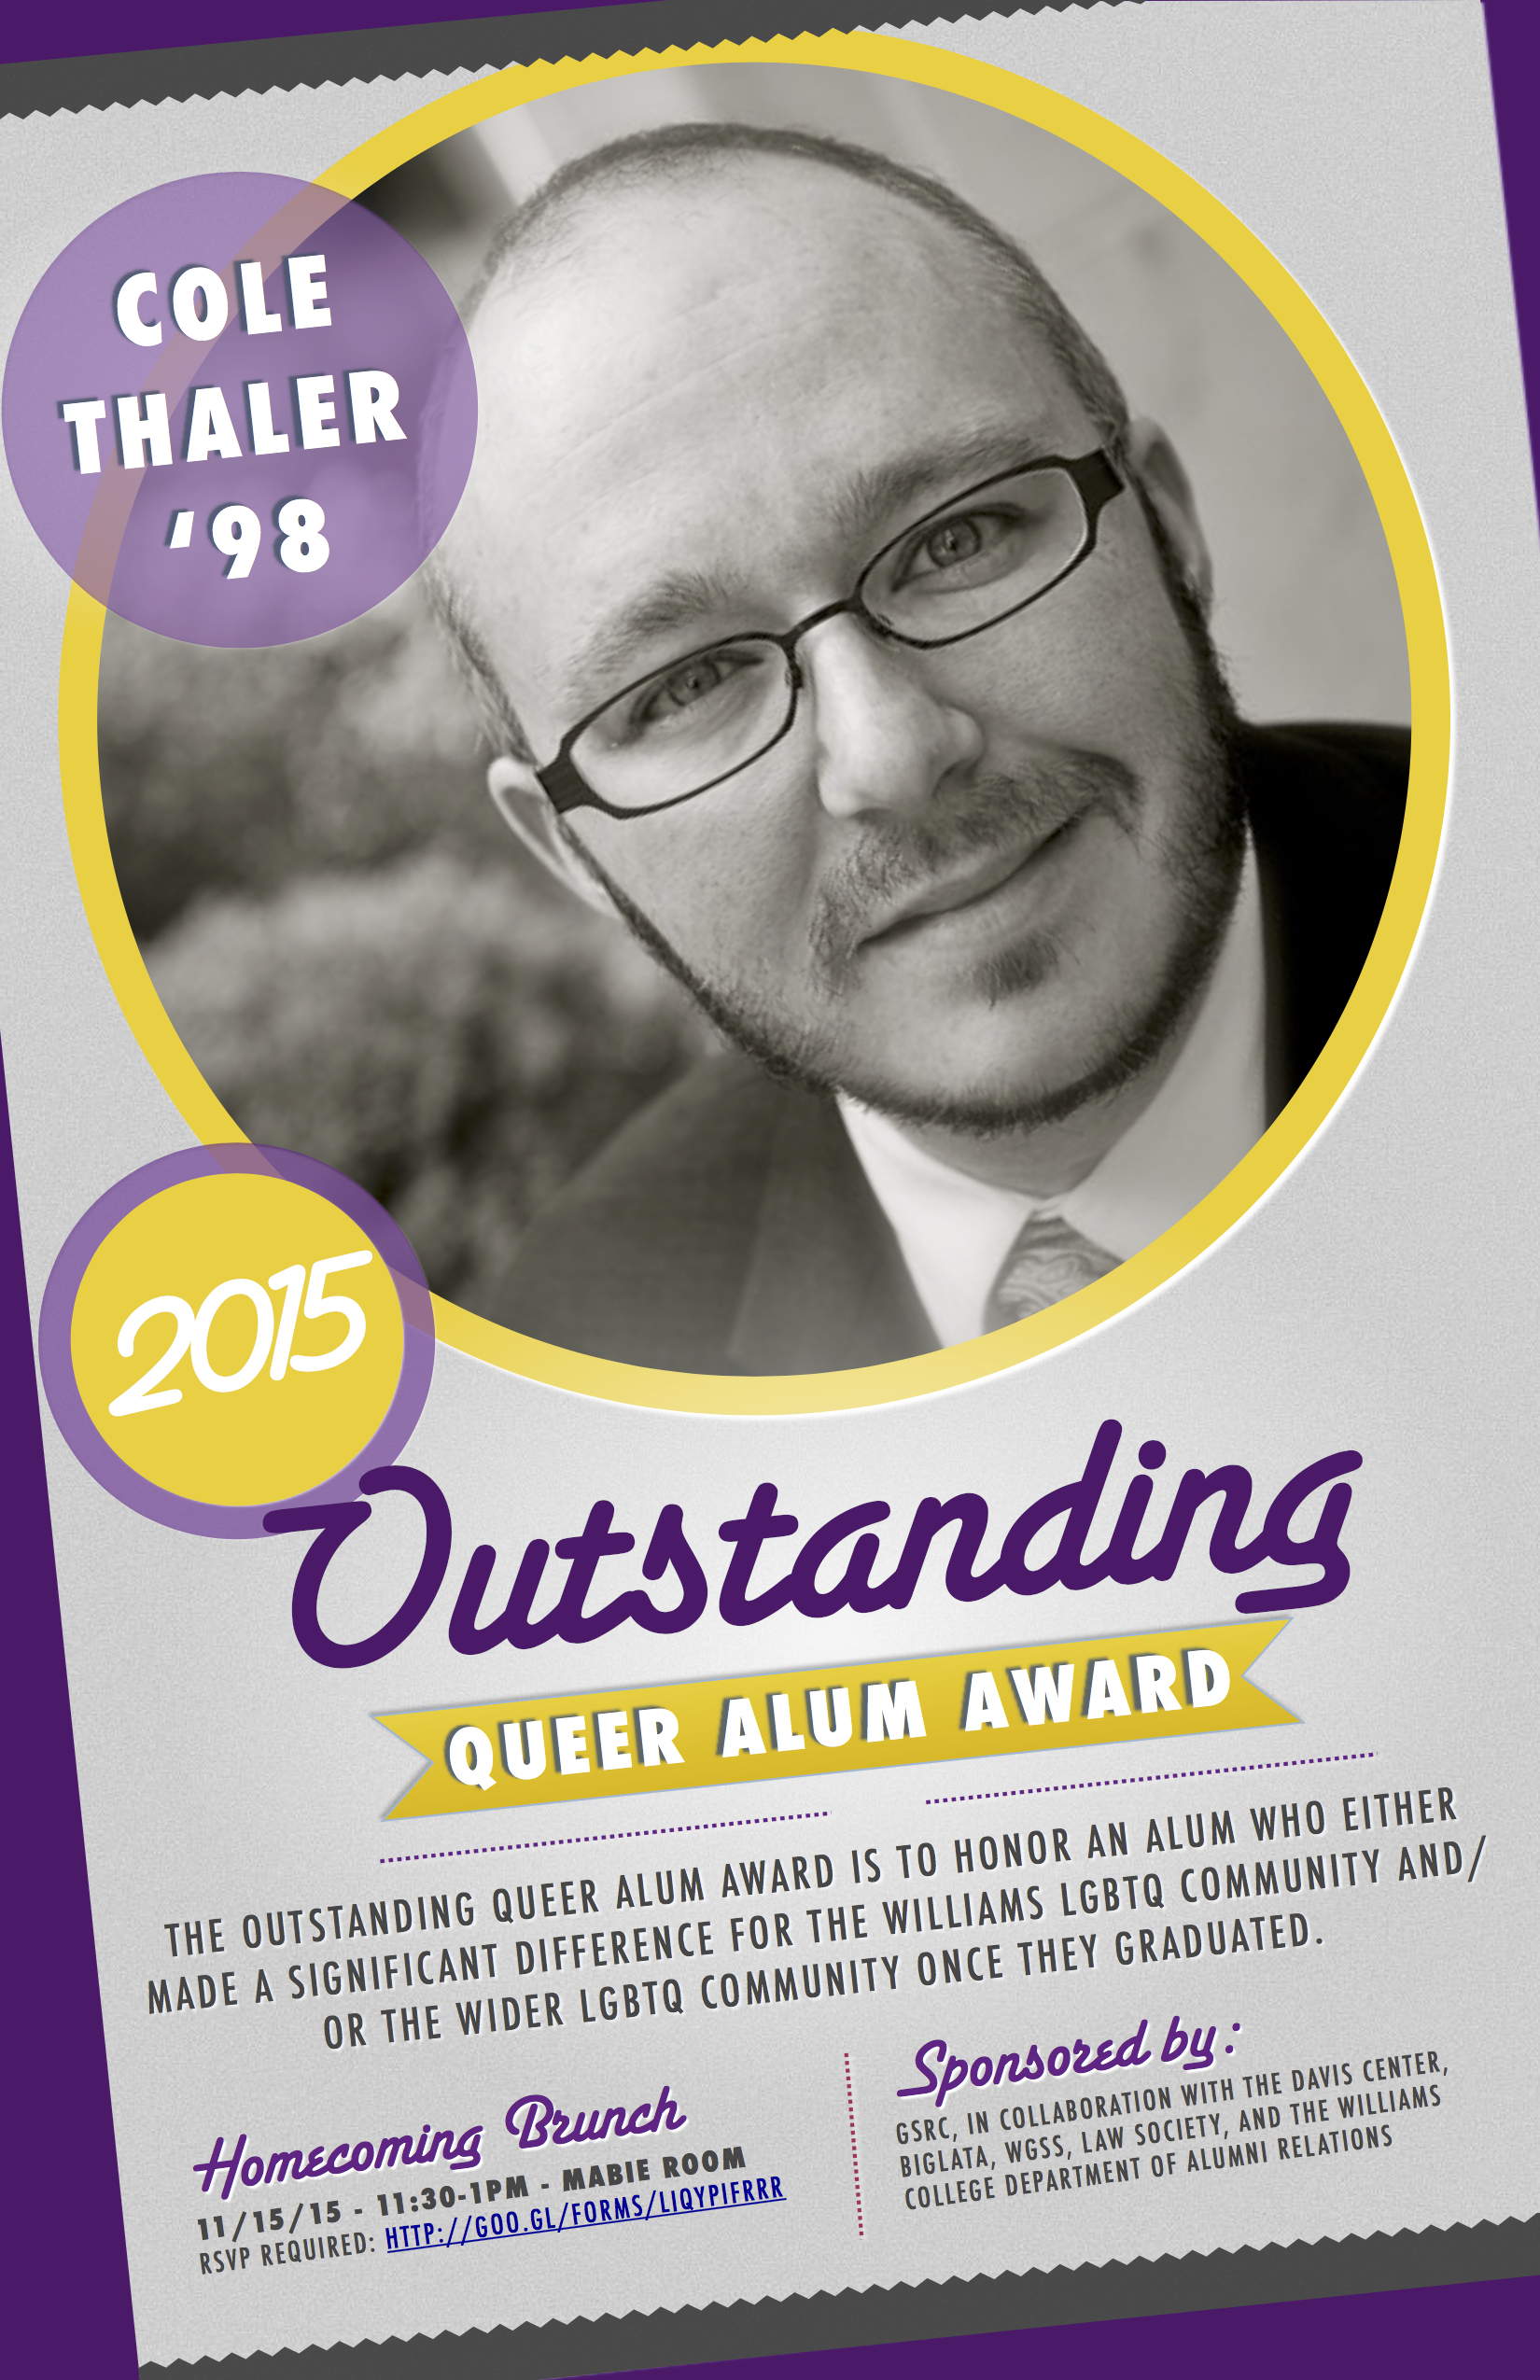 2015 outstanding queer alum award announcement brunch poster